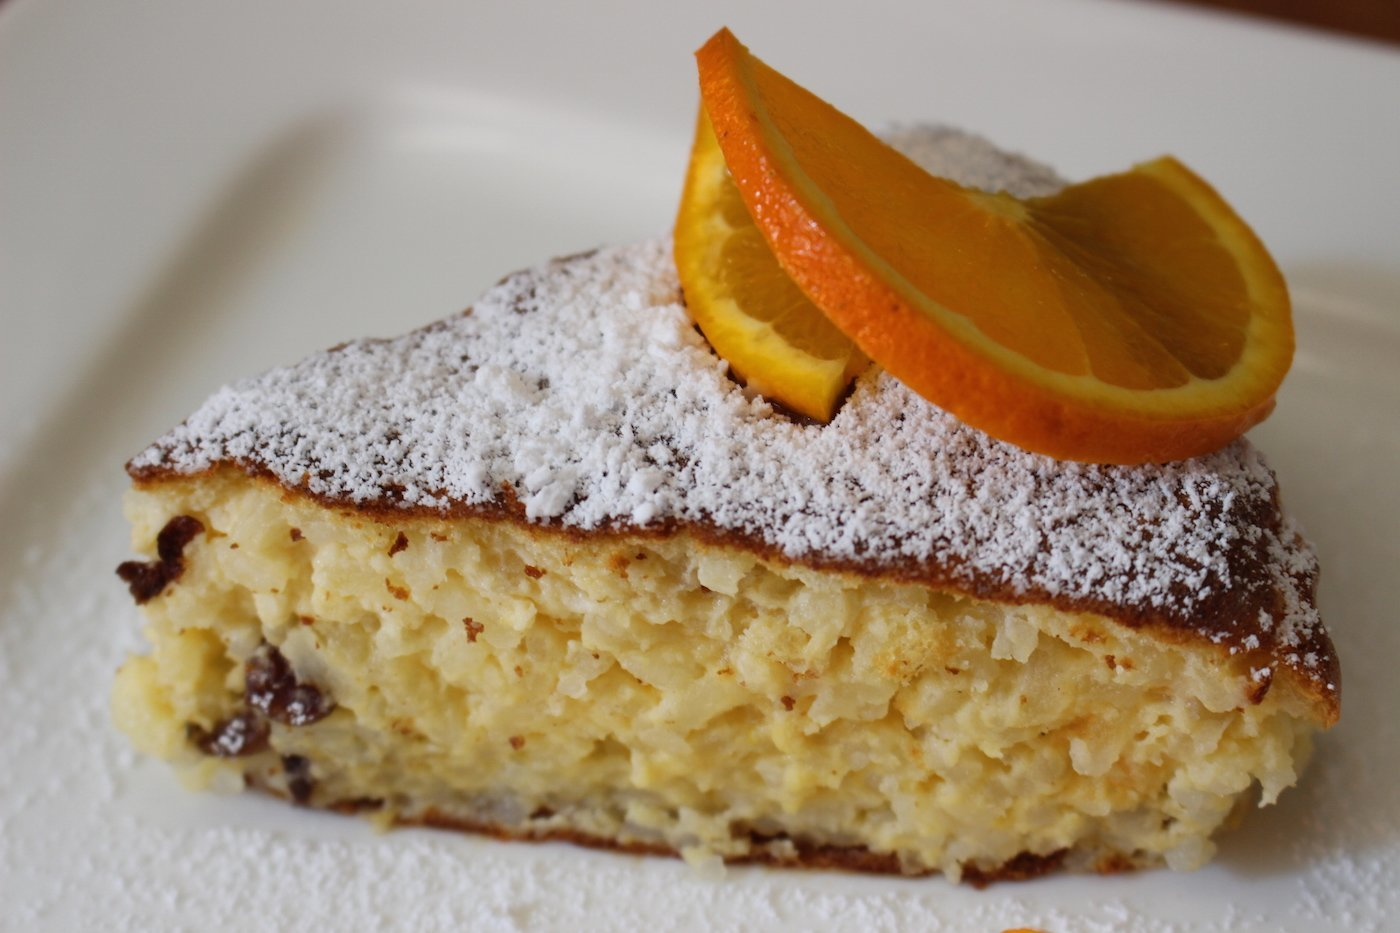 Italienisch Kuchen Orangen Reis Kuchen Orange Rice Cake Aus Two Greedy Italians